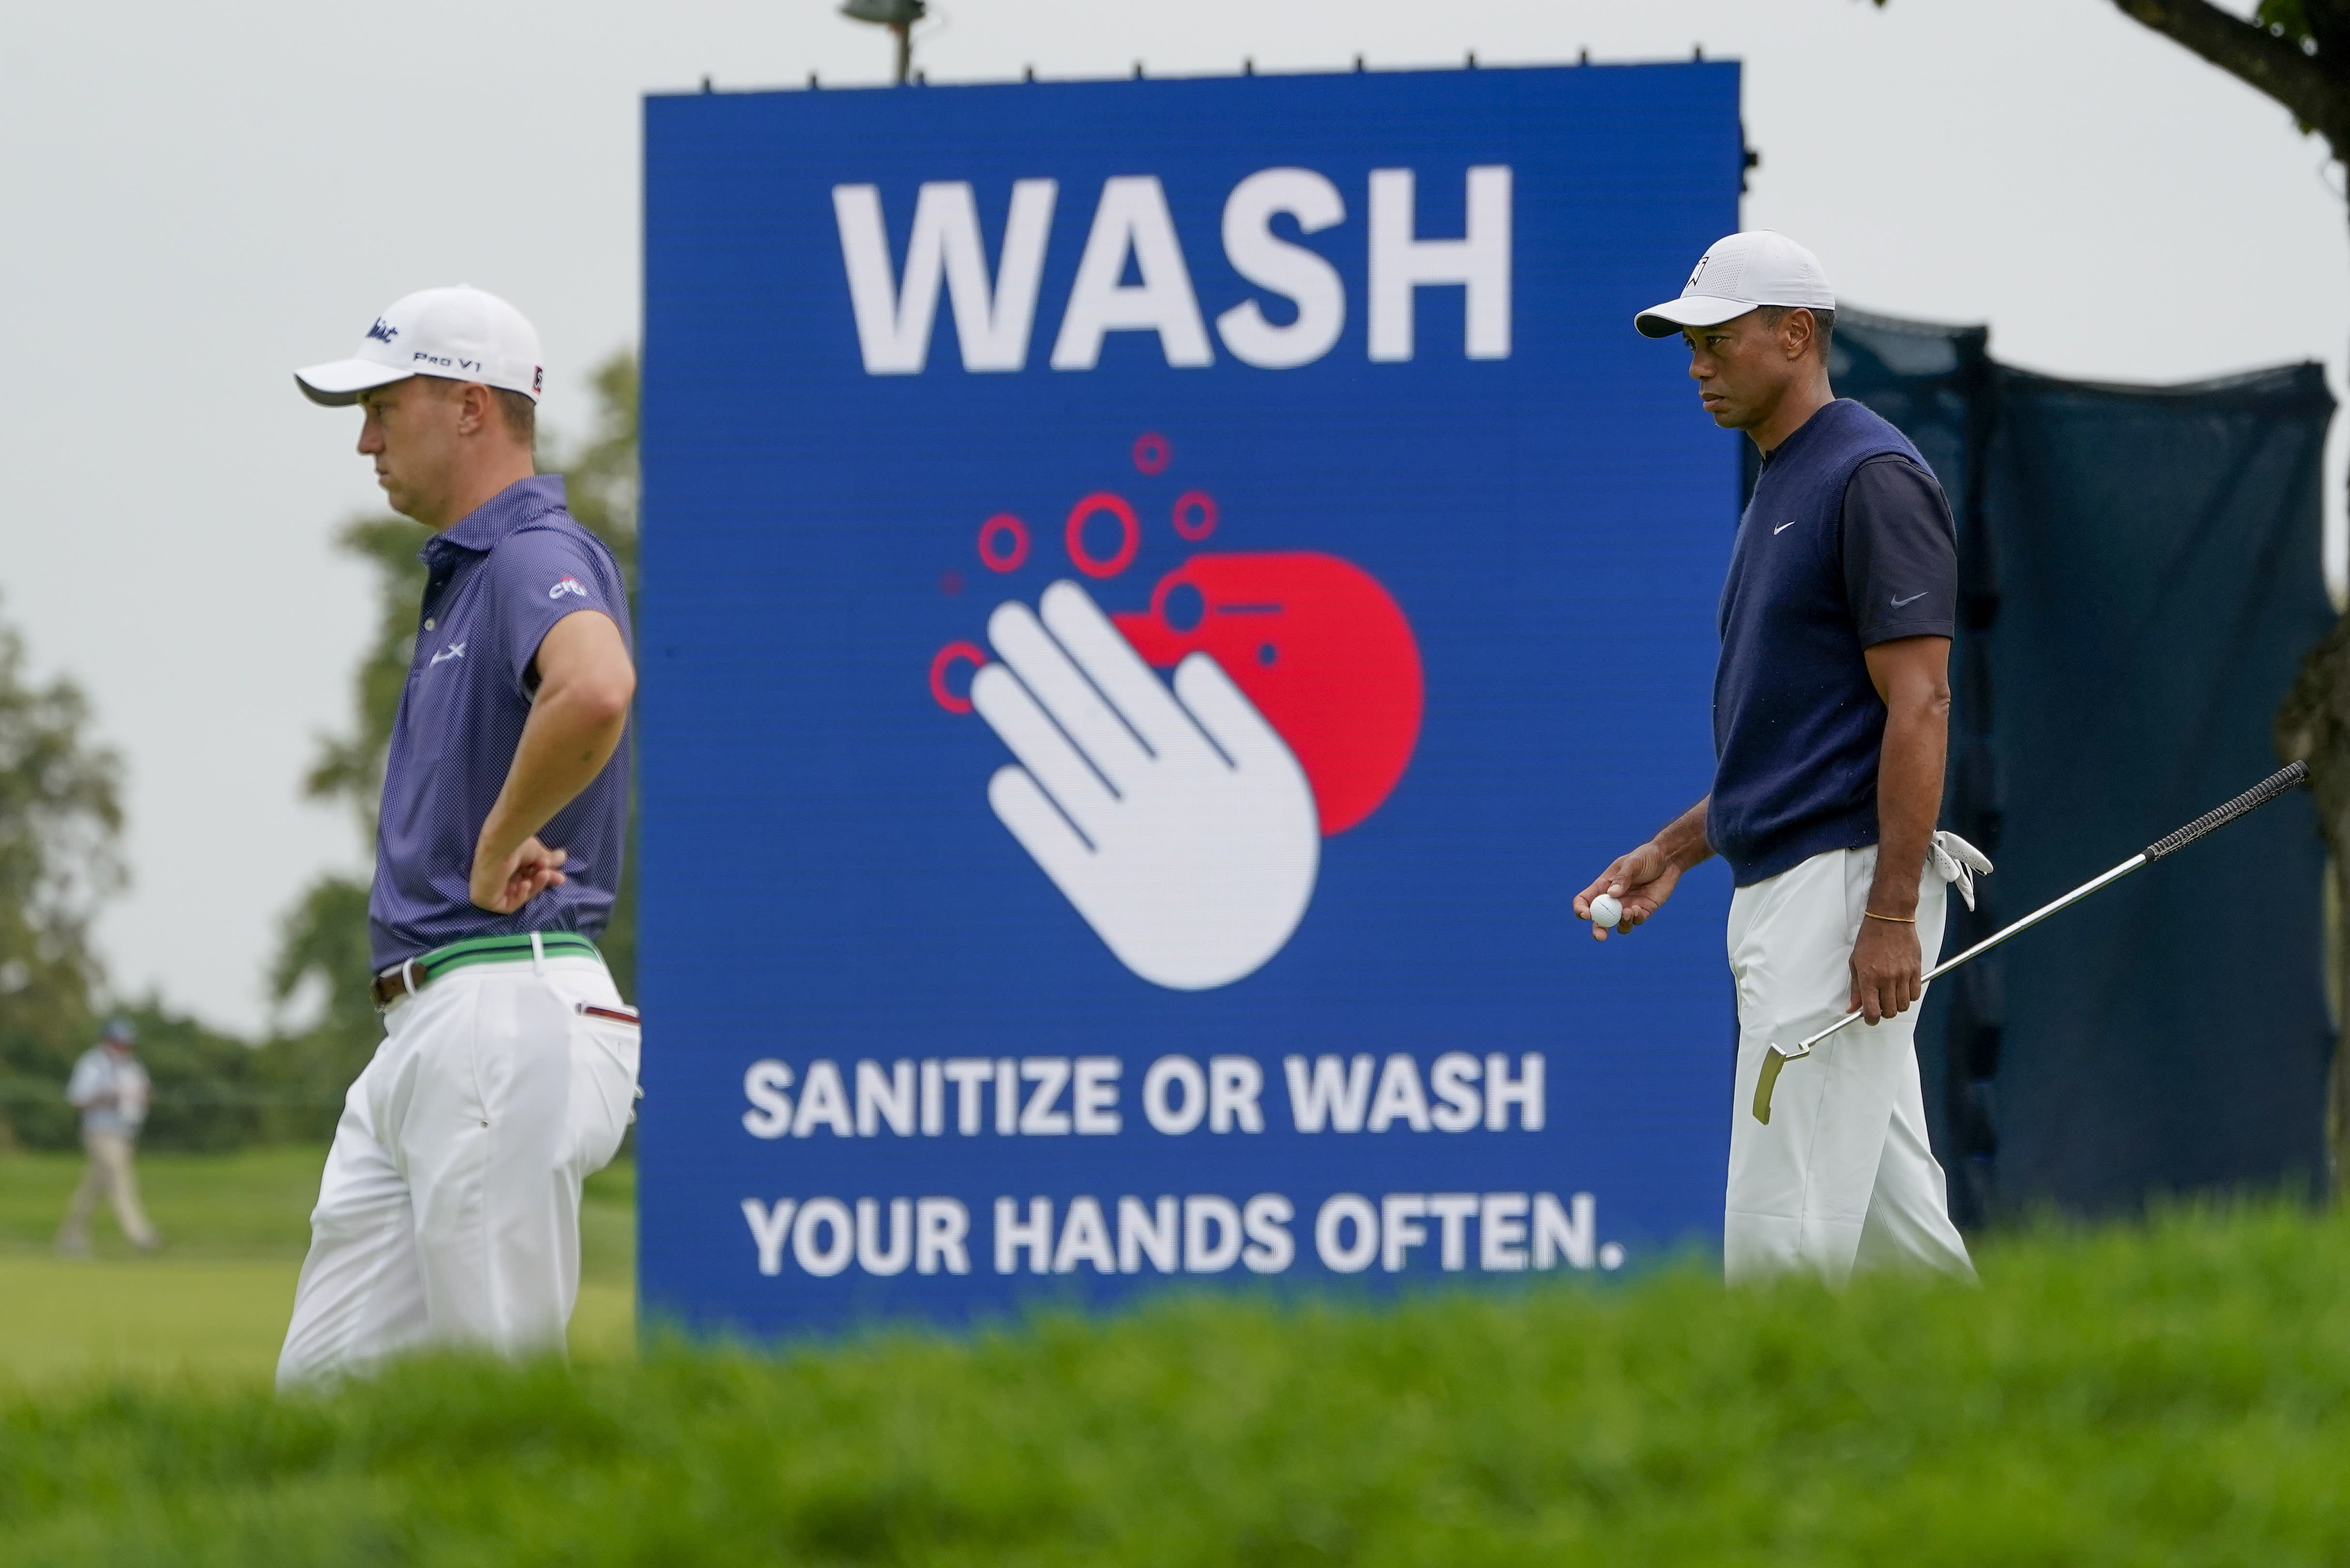 Justin Thomas, of the United States, left, and Tiger Woods, of the United States, wait to putt on the 17th green during the first round of the US Open Golf Championship, Thursday, Sept. 17, 2020, in Mamaroneck, N.Y. (AP Photo/Charles Krupa)